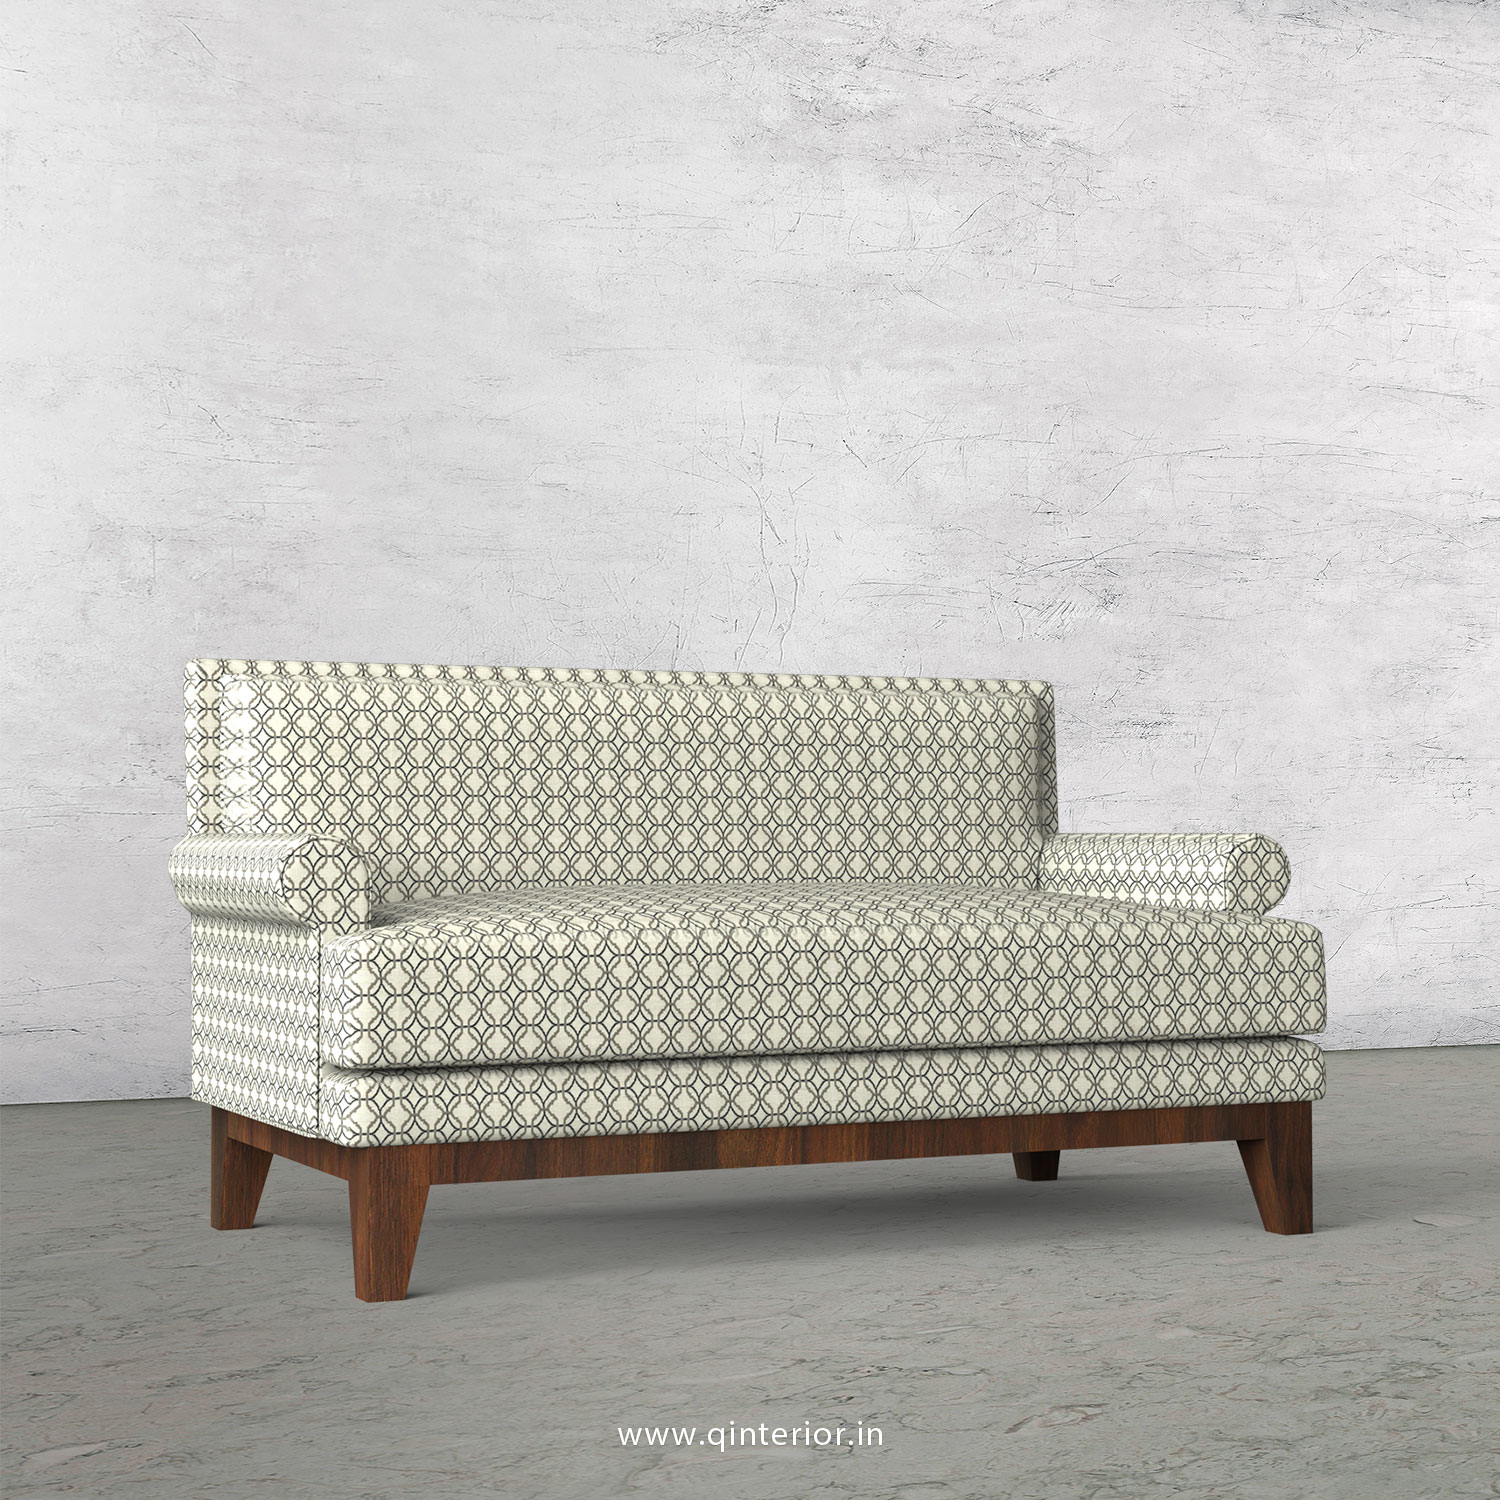 Aviana 2 Seater Sofa in Jacquard - SFA001 JQ03